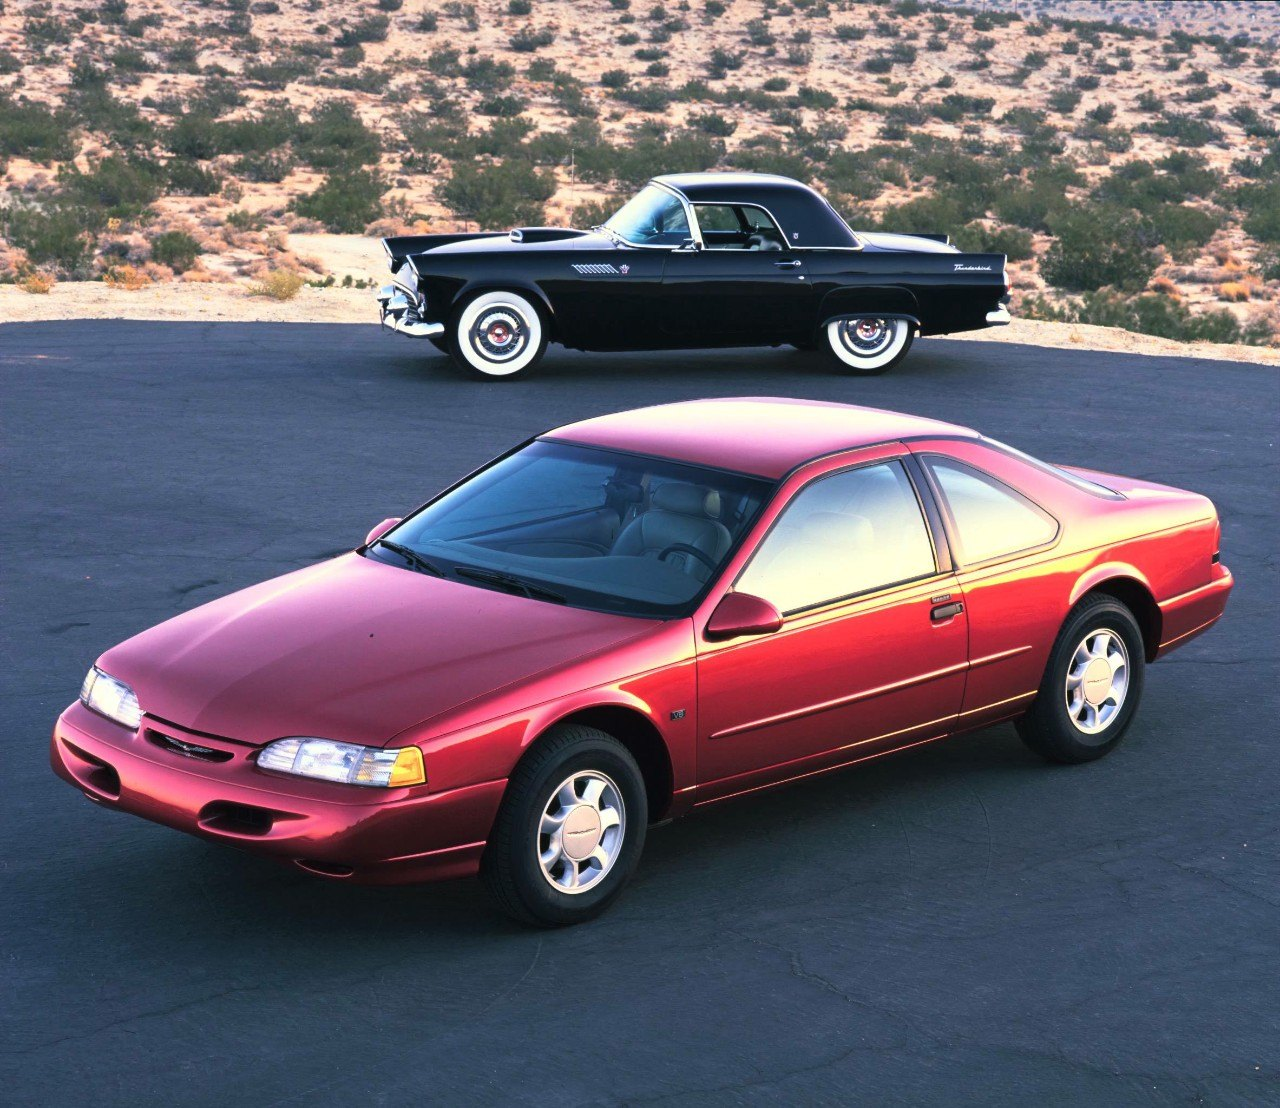 1955 and 1995 Ford Thunderbird